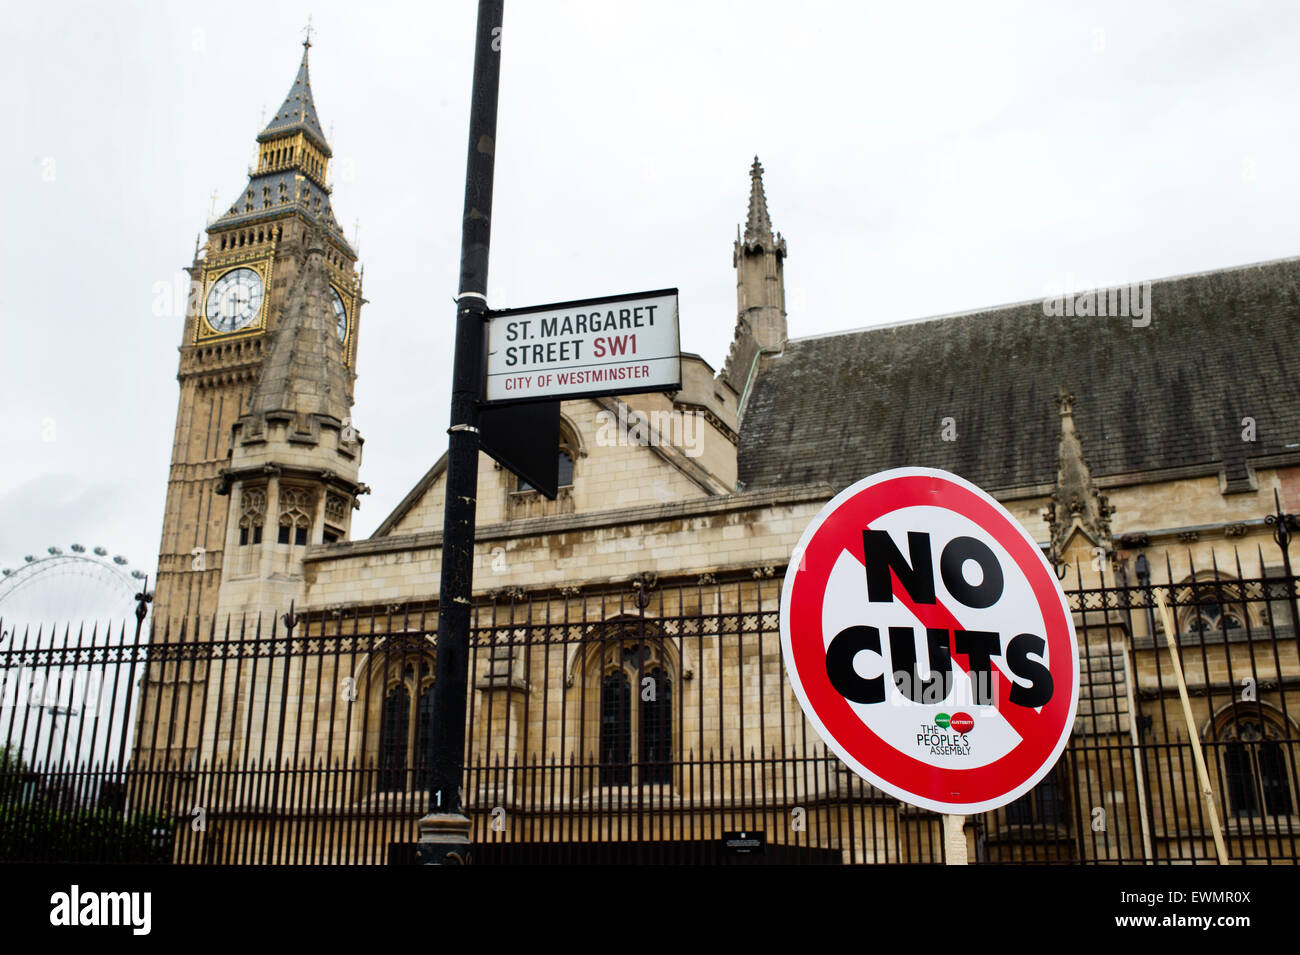 March against austerity,  A sign saying 'No cuts' is placed in front of Big Ben and the Houses of Parliament. - Stock Image